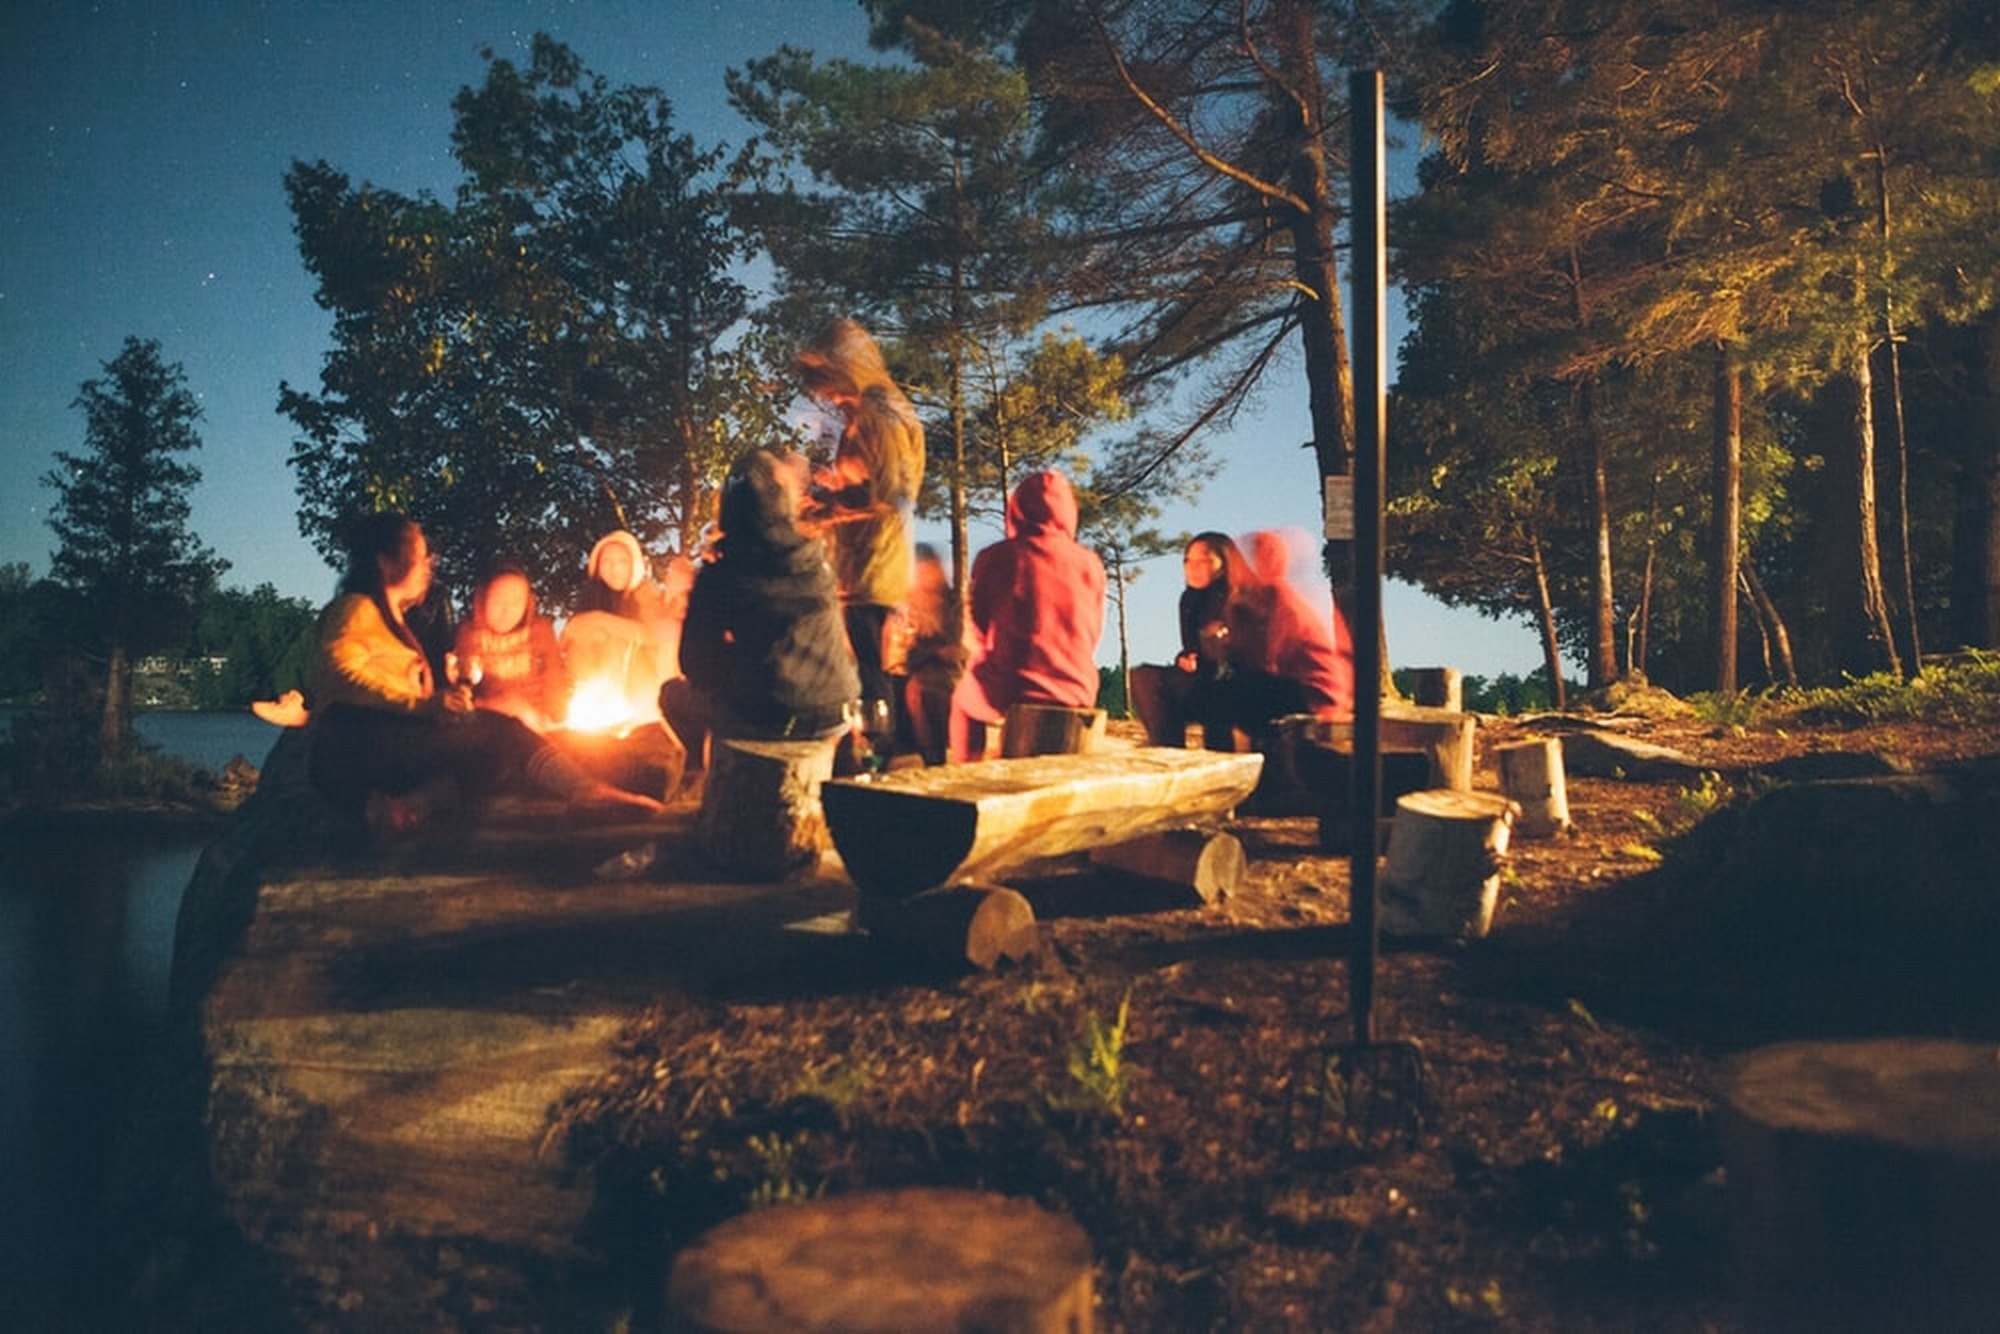 Memoir musings around the campfire, part 3: Diving in